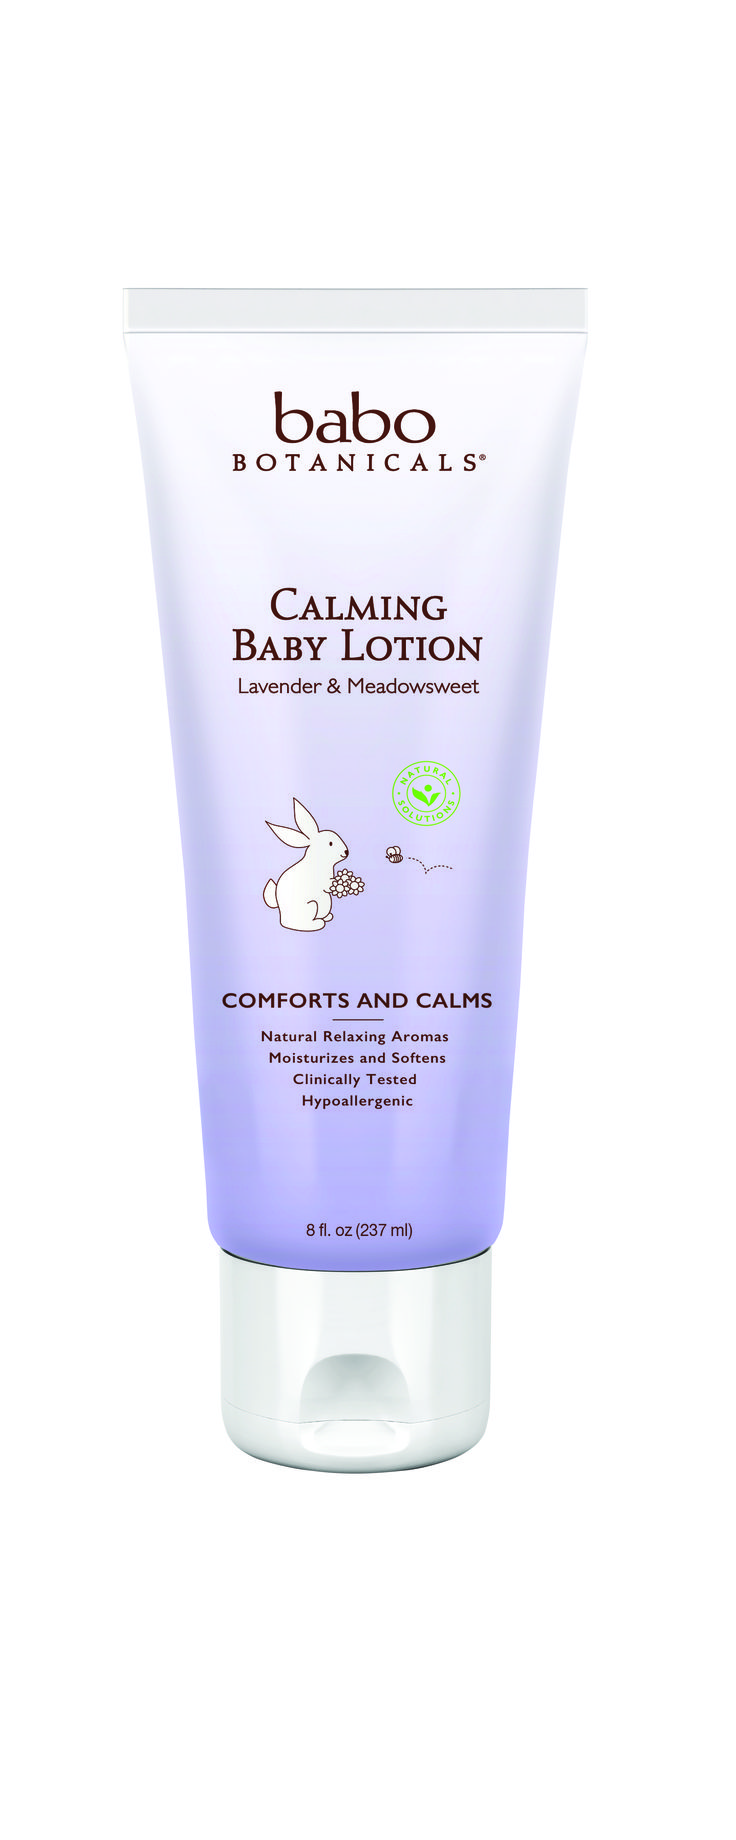 Babo's Calming Baby Lotion is perfect for calming and relaxing you or your baby. Contains a soft, soothing scent of french lavender, rose and chamomile to relax, soothe and facilitate a more restful sleep. This gentle, hypoallergenic formula also contains Meadowsweet Oil to gently moisturizes delicate skin.